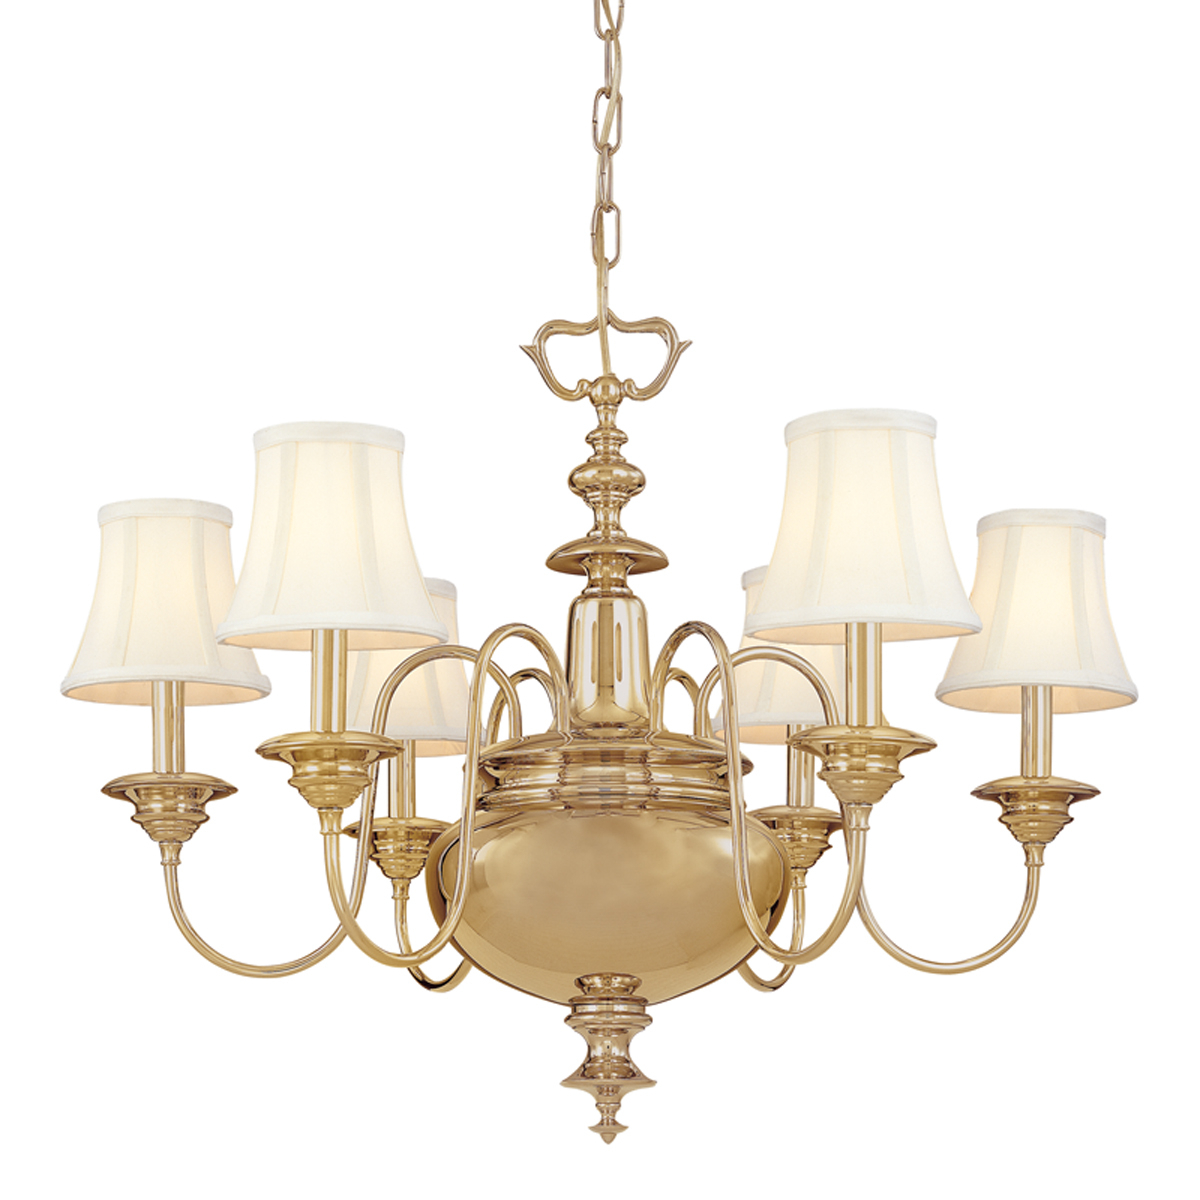 Yorktown 6 Light Chandelier For Millbrook 5 Light Shaded Chandeliers (View 21 of 30)